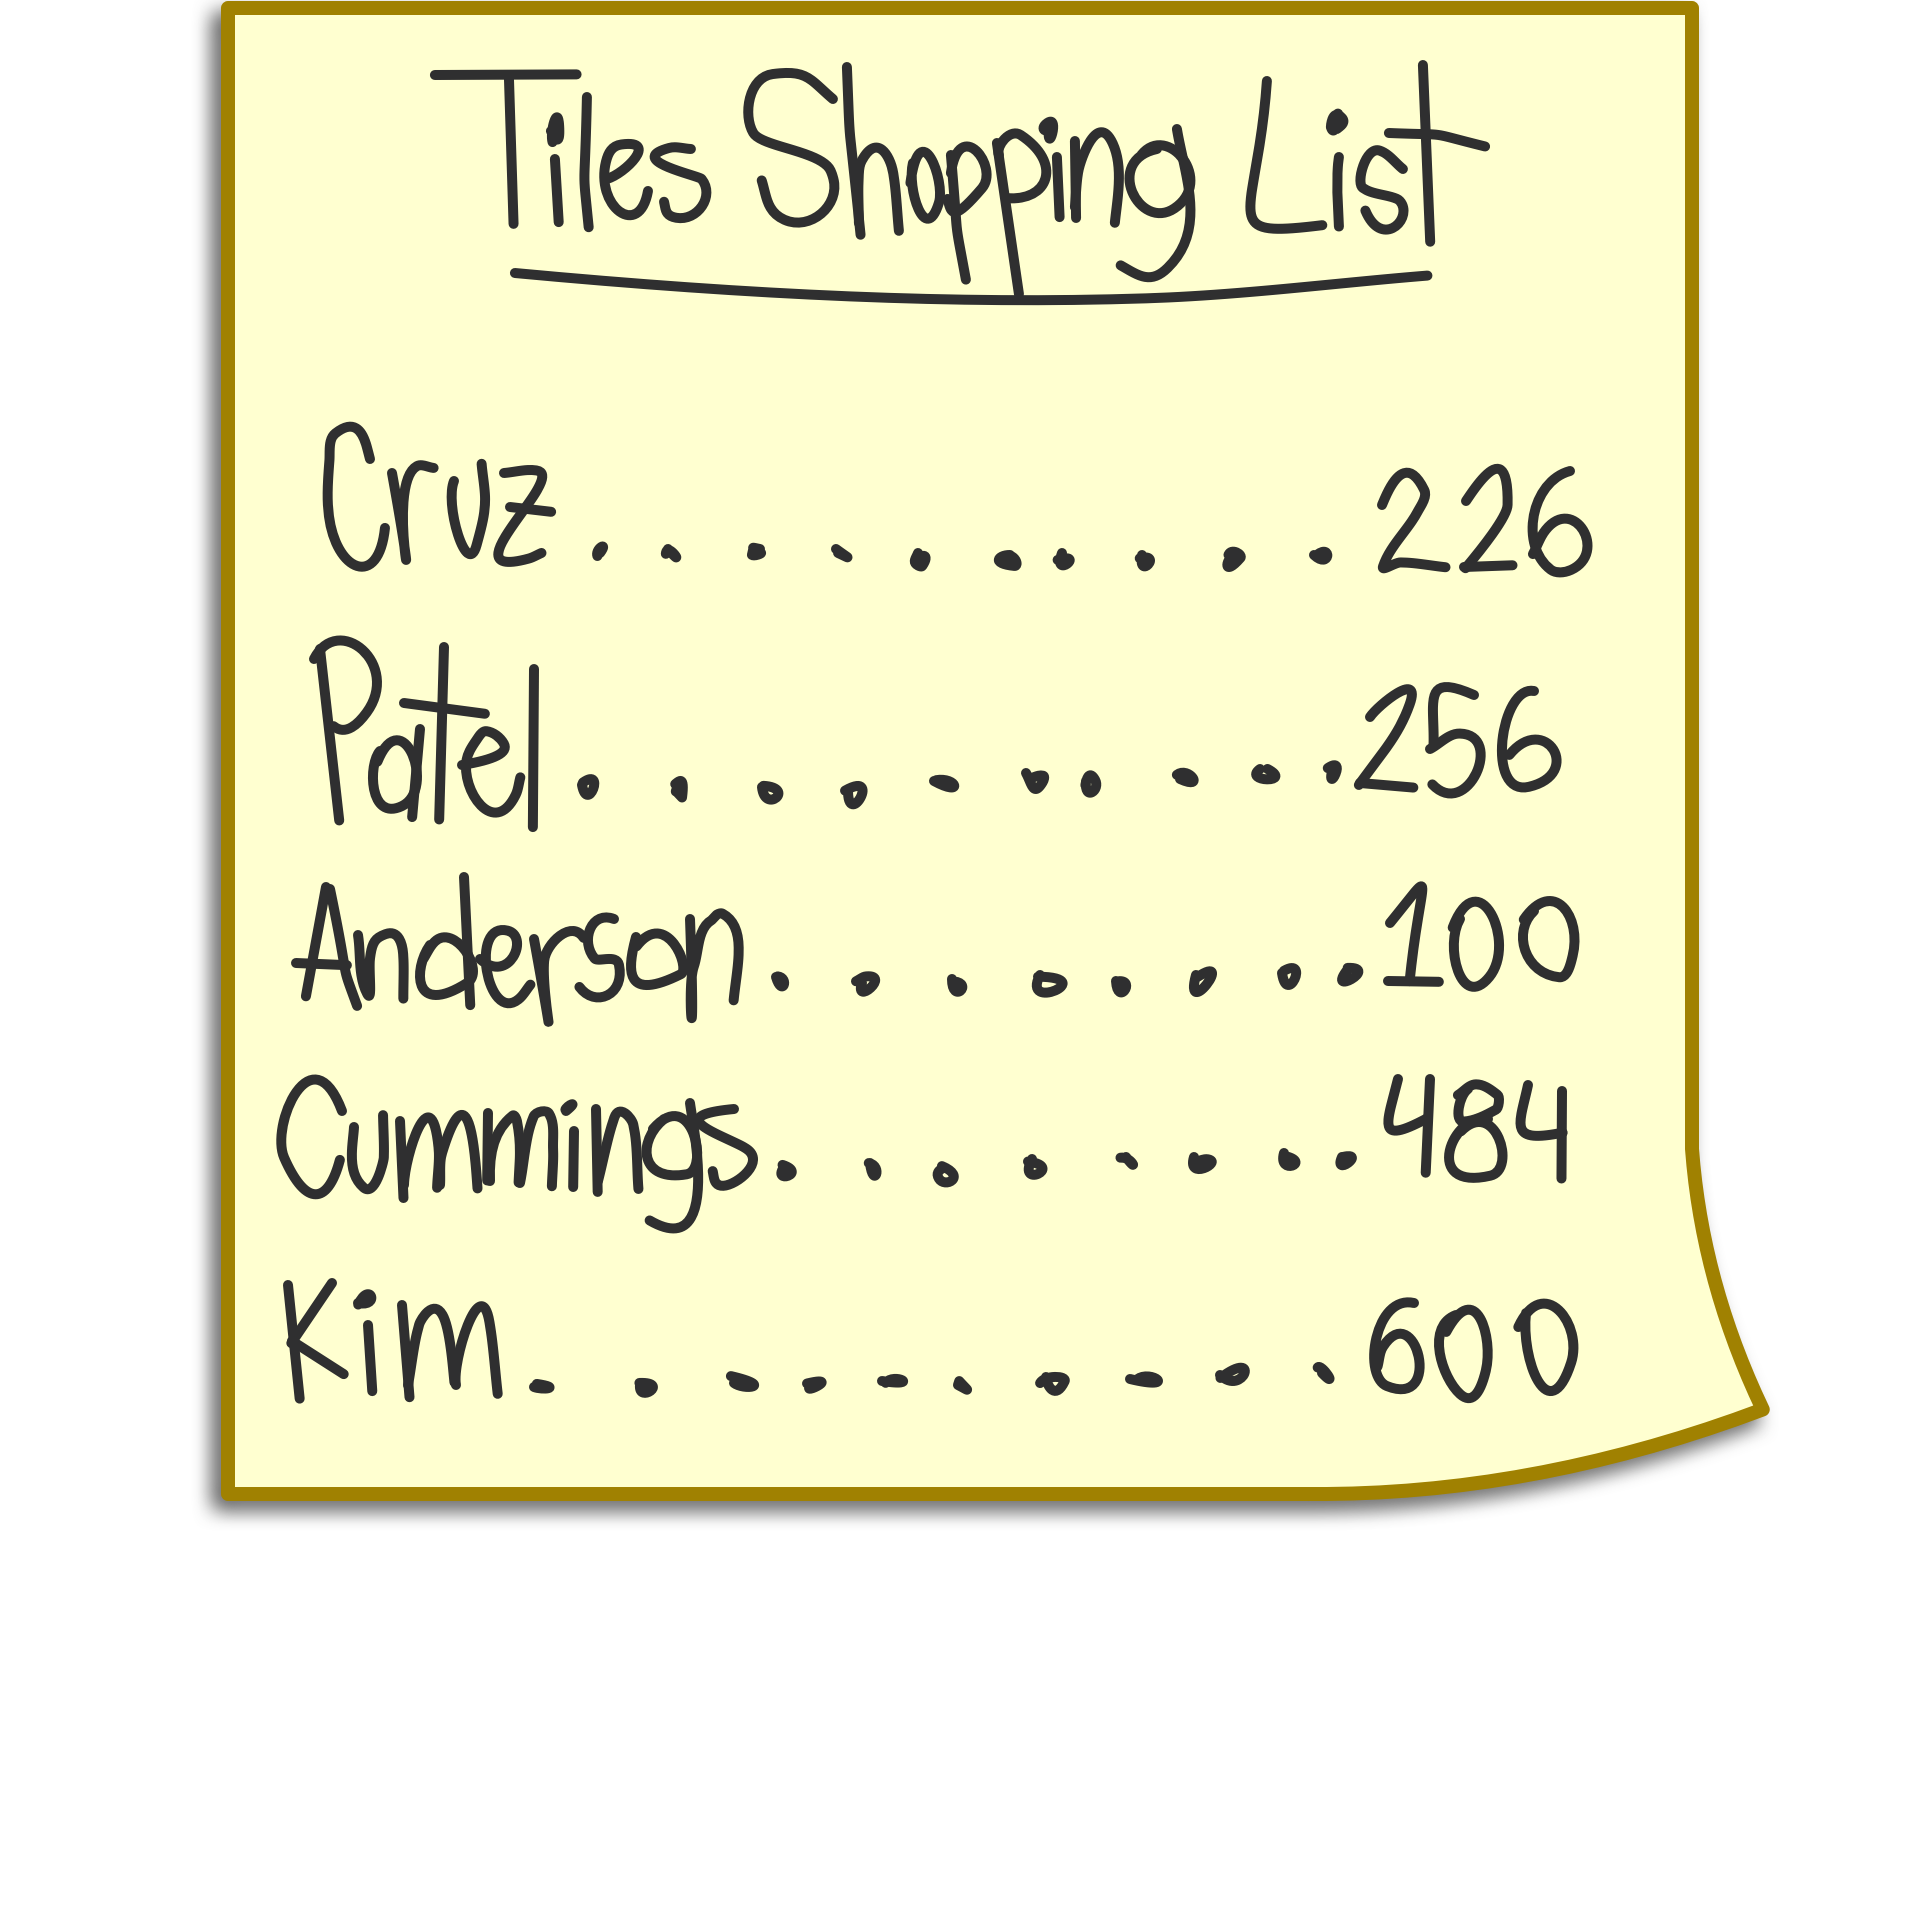 A shopping list for tiles for five families' swimming pools. The Cruz family has 226 tiles. The Patel family has 256 tiles. The Anderson family has 100 tiles. The Cummings family has 484 tiles. The Kim family has 600 tiles.